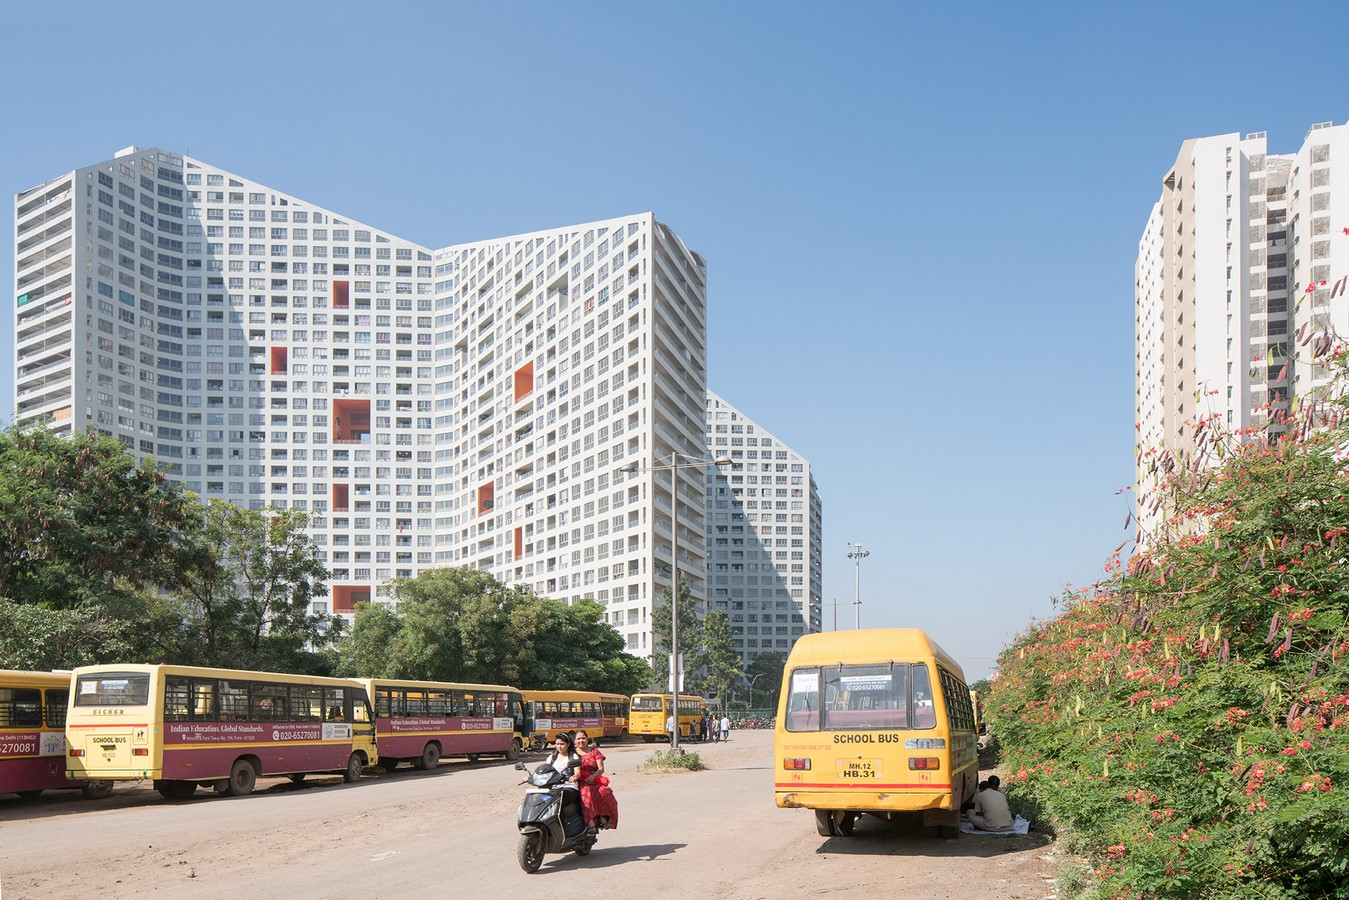 Future towers in Pune by MVRDV - Sheet1